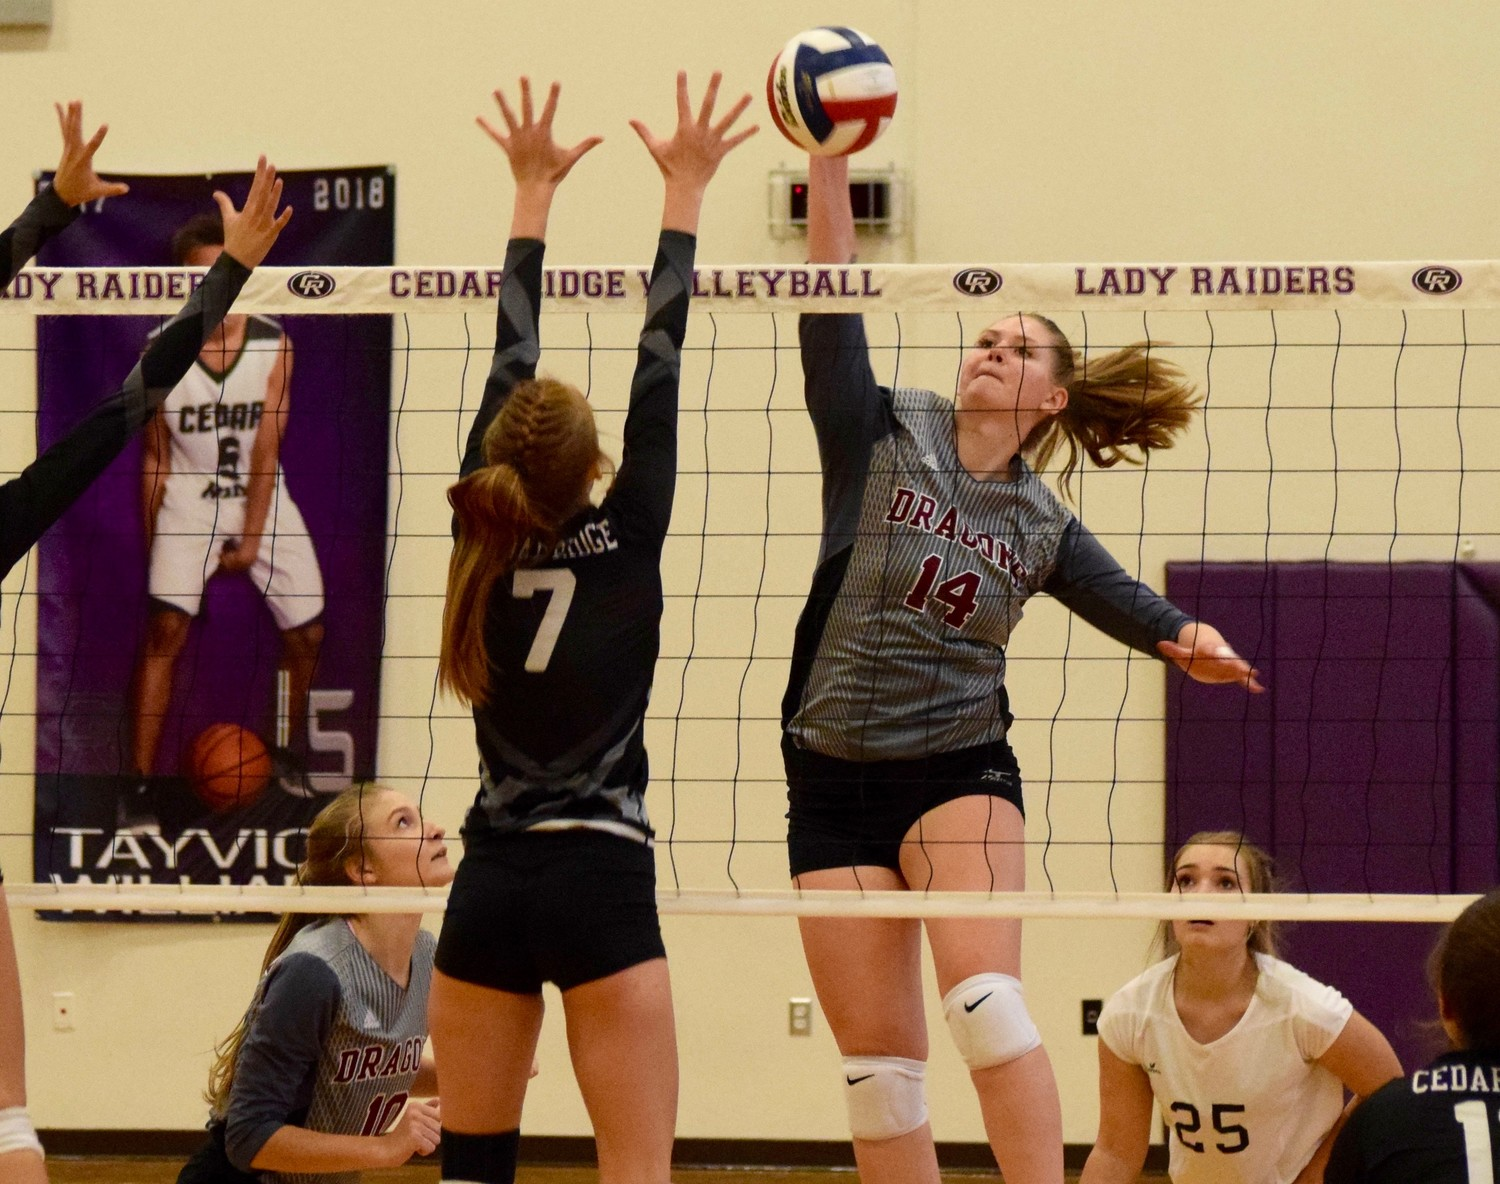 Yasmina Kadich and Round Rock beat Cedar Ridge 3-0 (25-22, 25-23, 25-23) in the first game of district 13-6A play on Tuesday night.